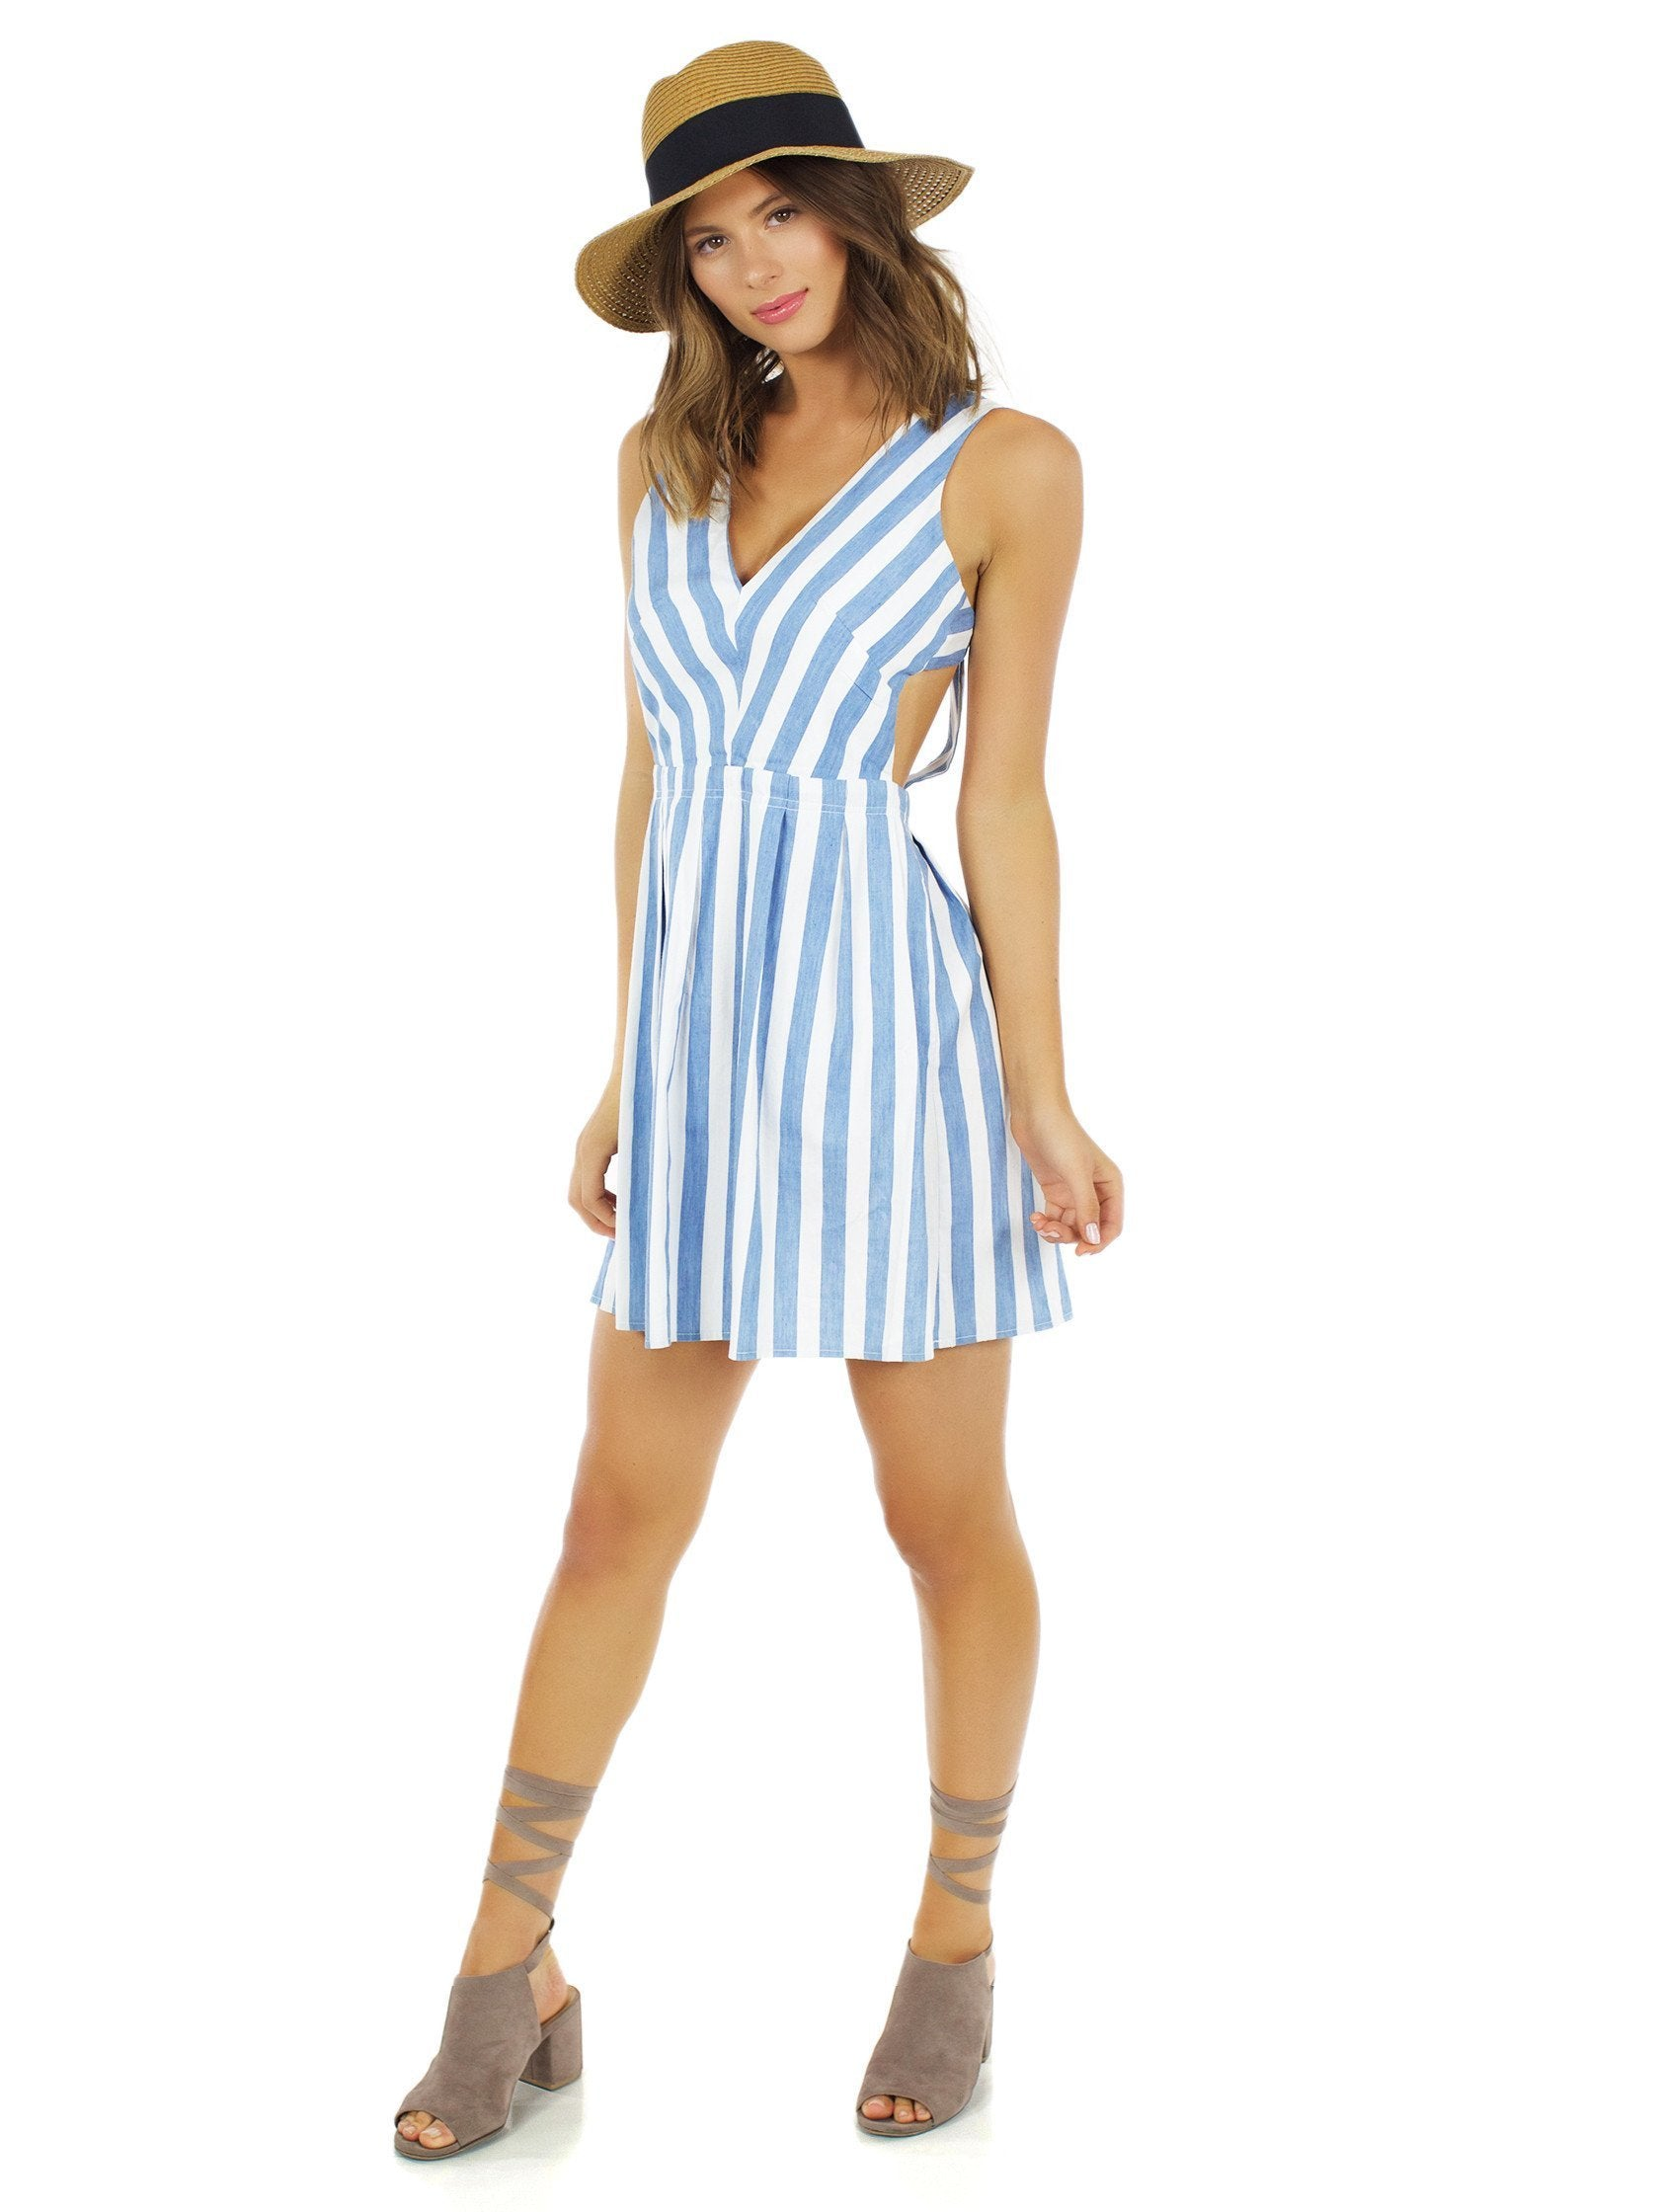 Woman wearing a dress rental from Lost In Lunar called Alexis Stripe Dress